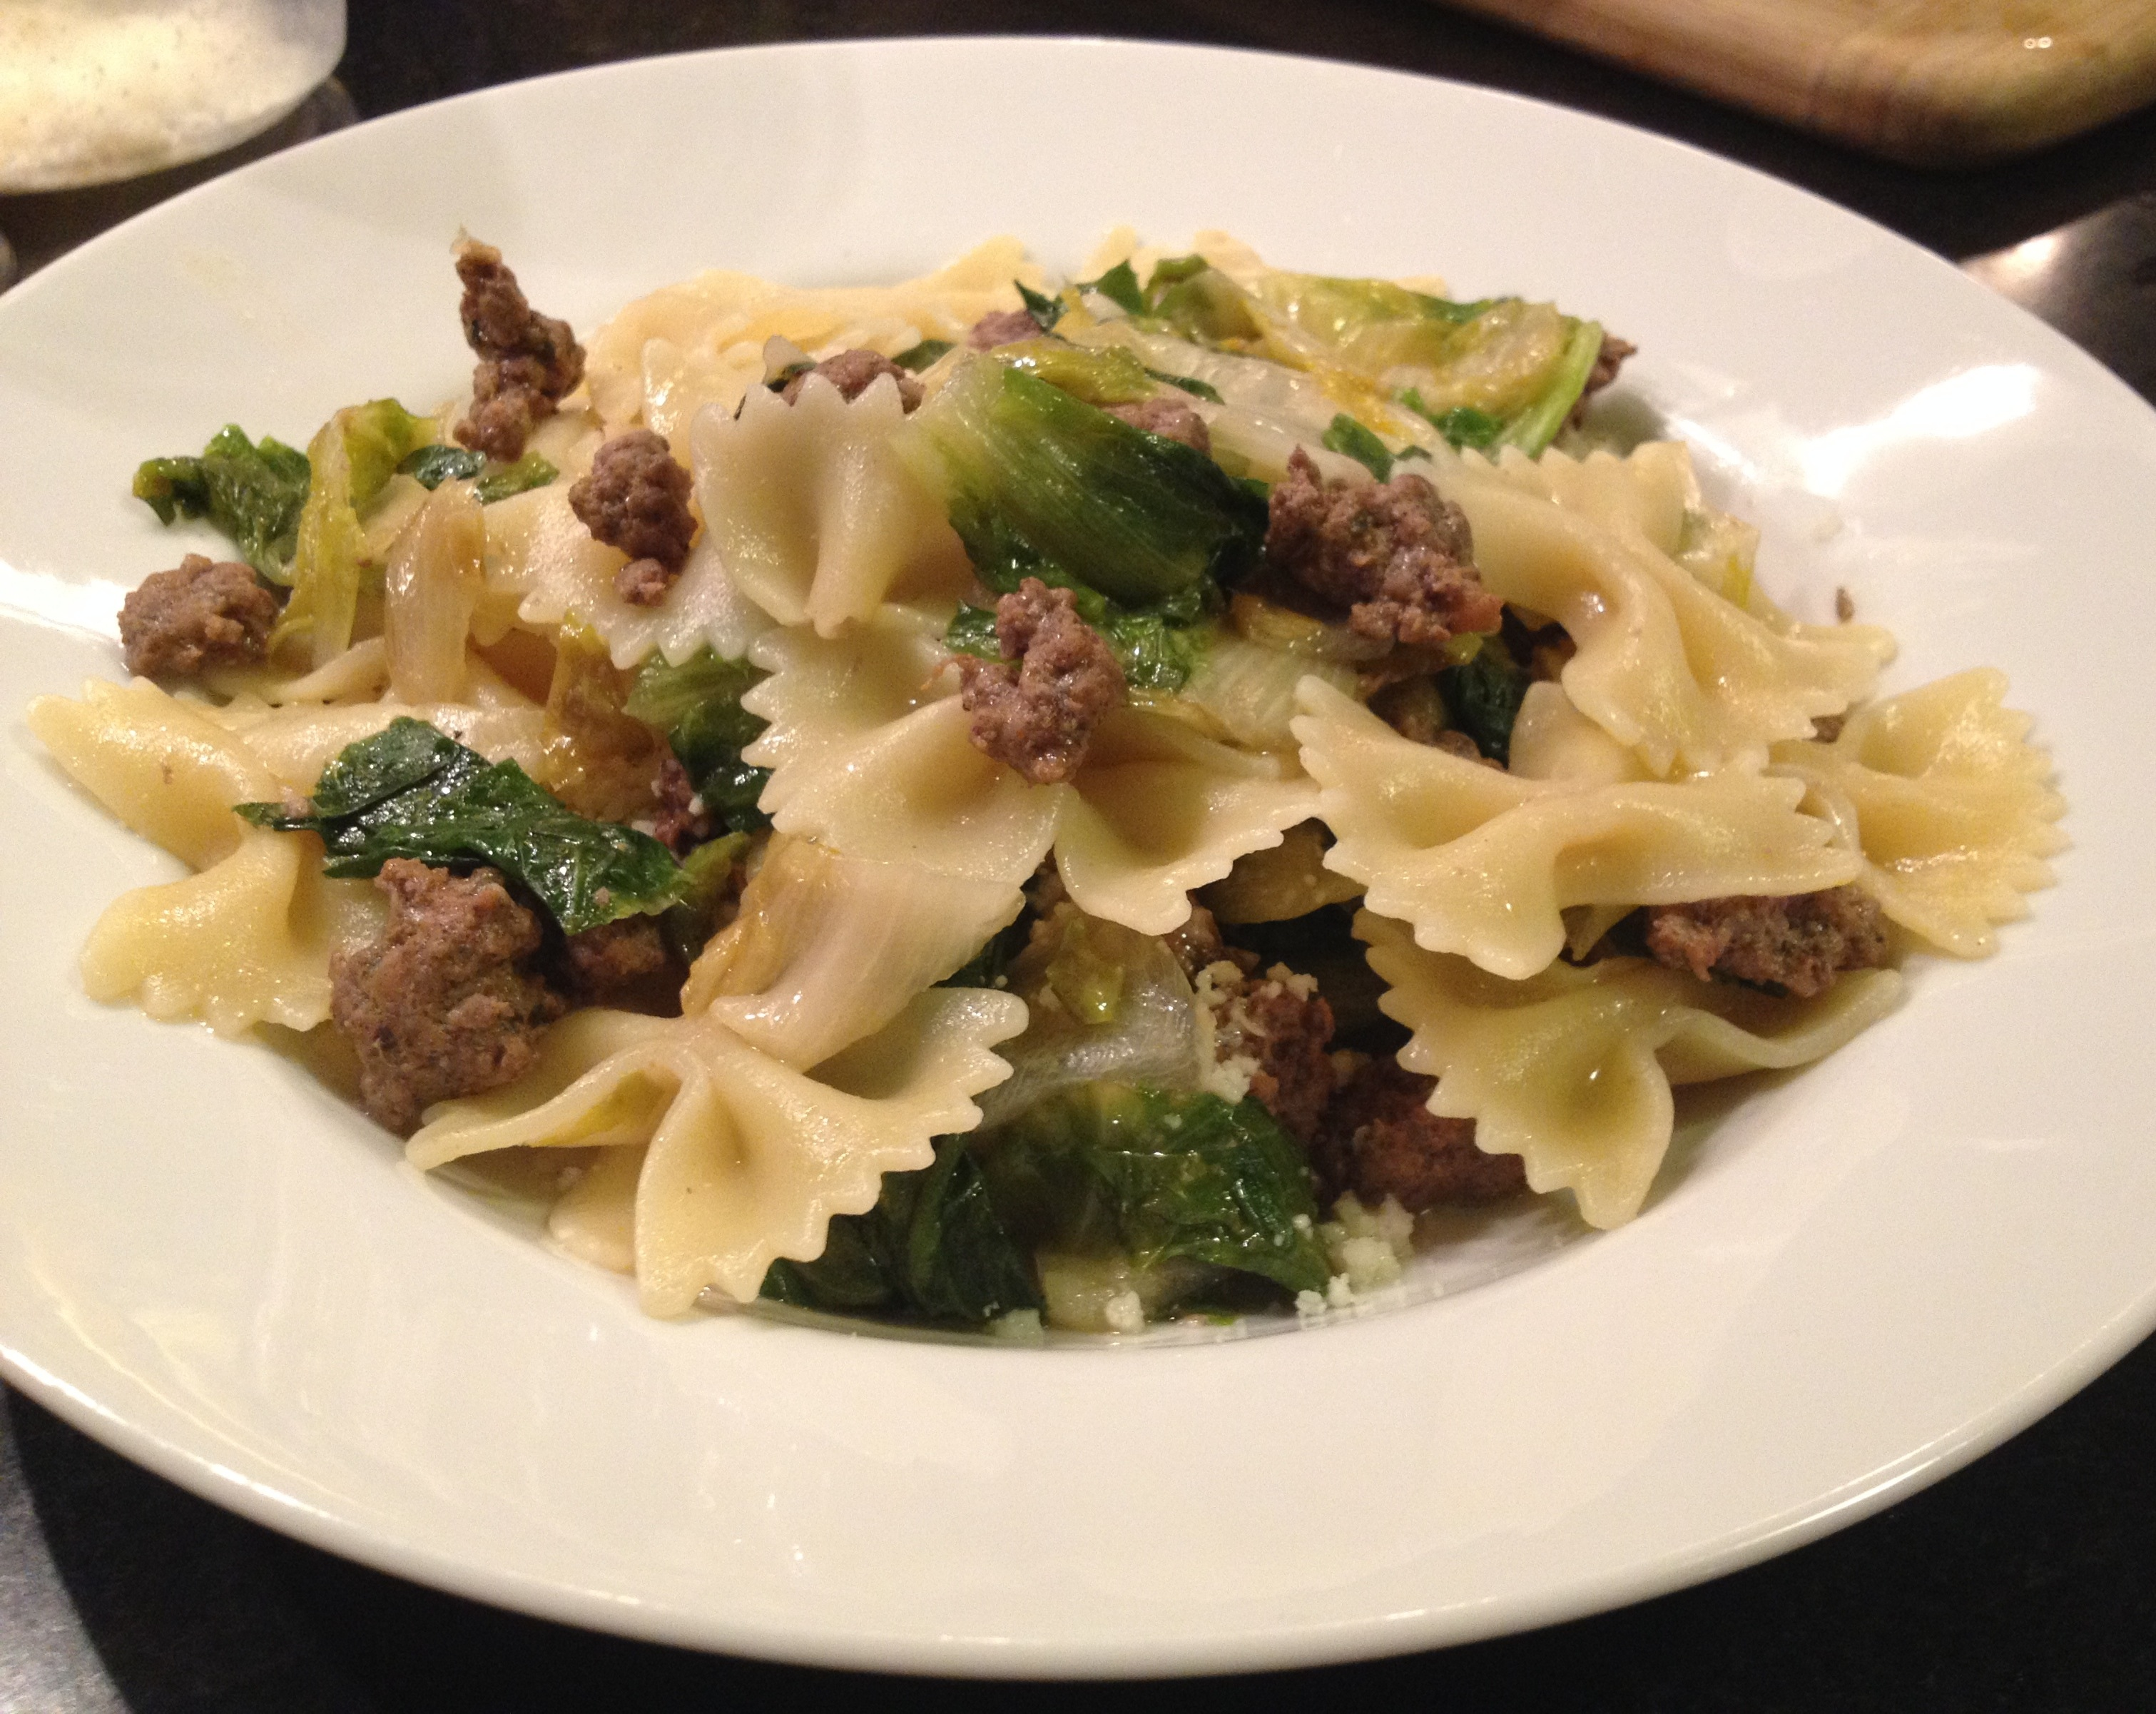 Farfalle with lamb sausage and escarole.